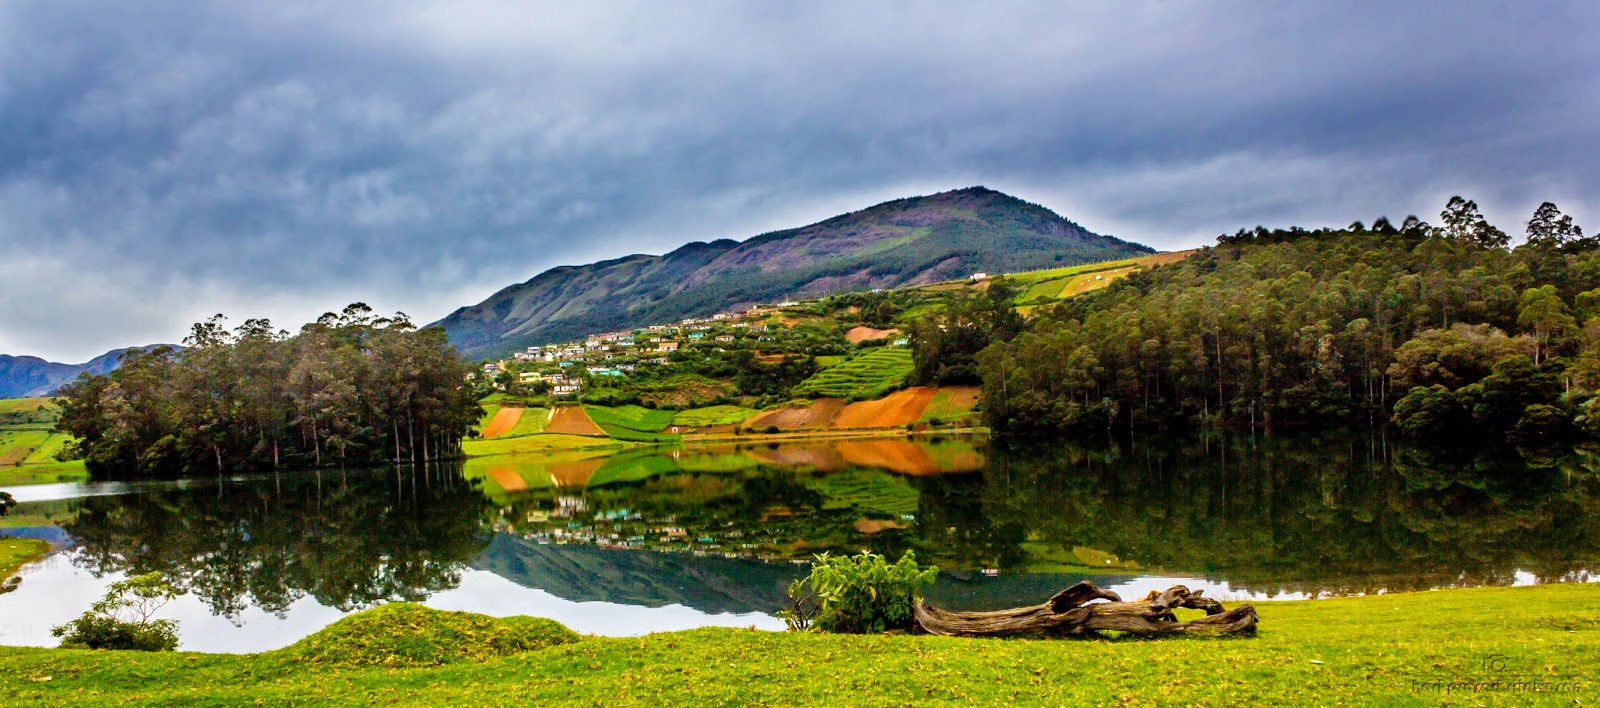 Landscape photo near Avalanche lake Ooty with a mountain in the background and houses on the slope. Lake shore in the foreground.